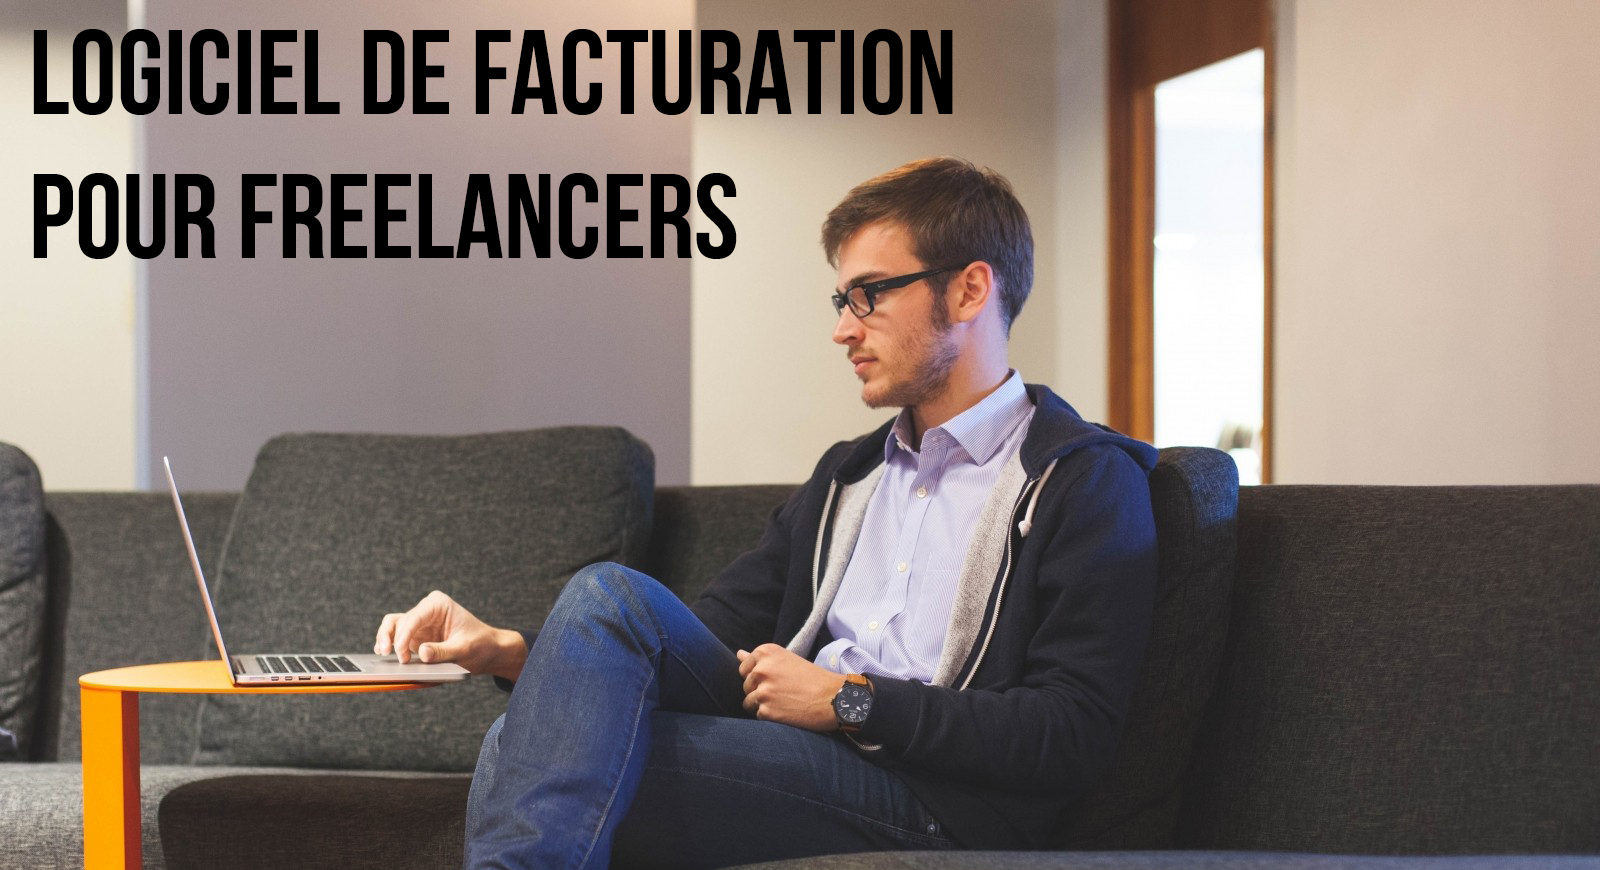 Debitoor, la facturation des freelancers